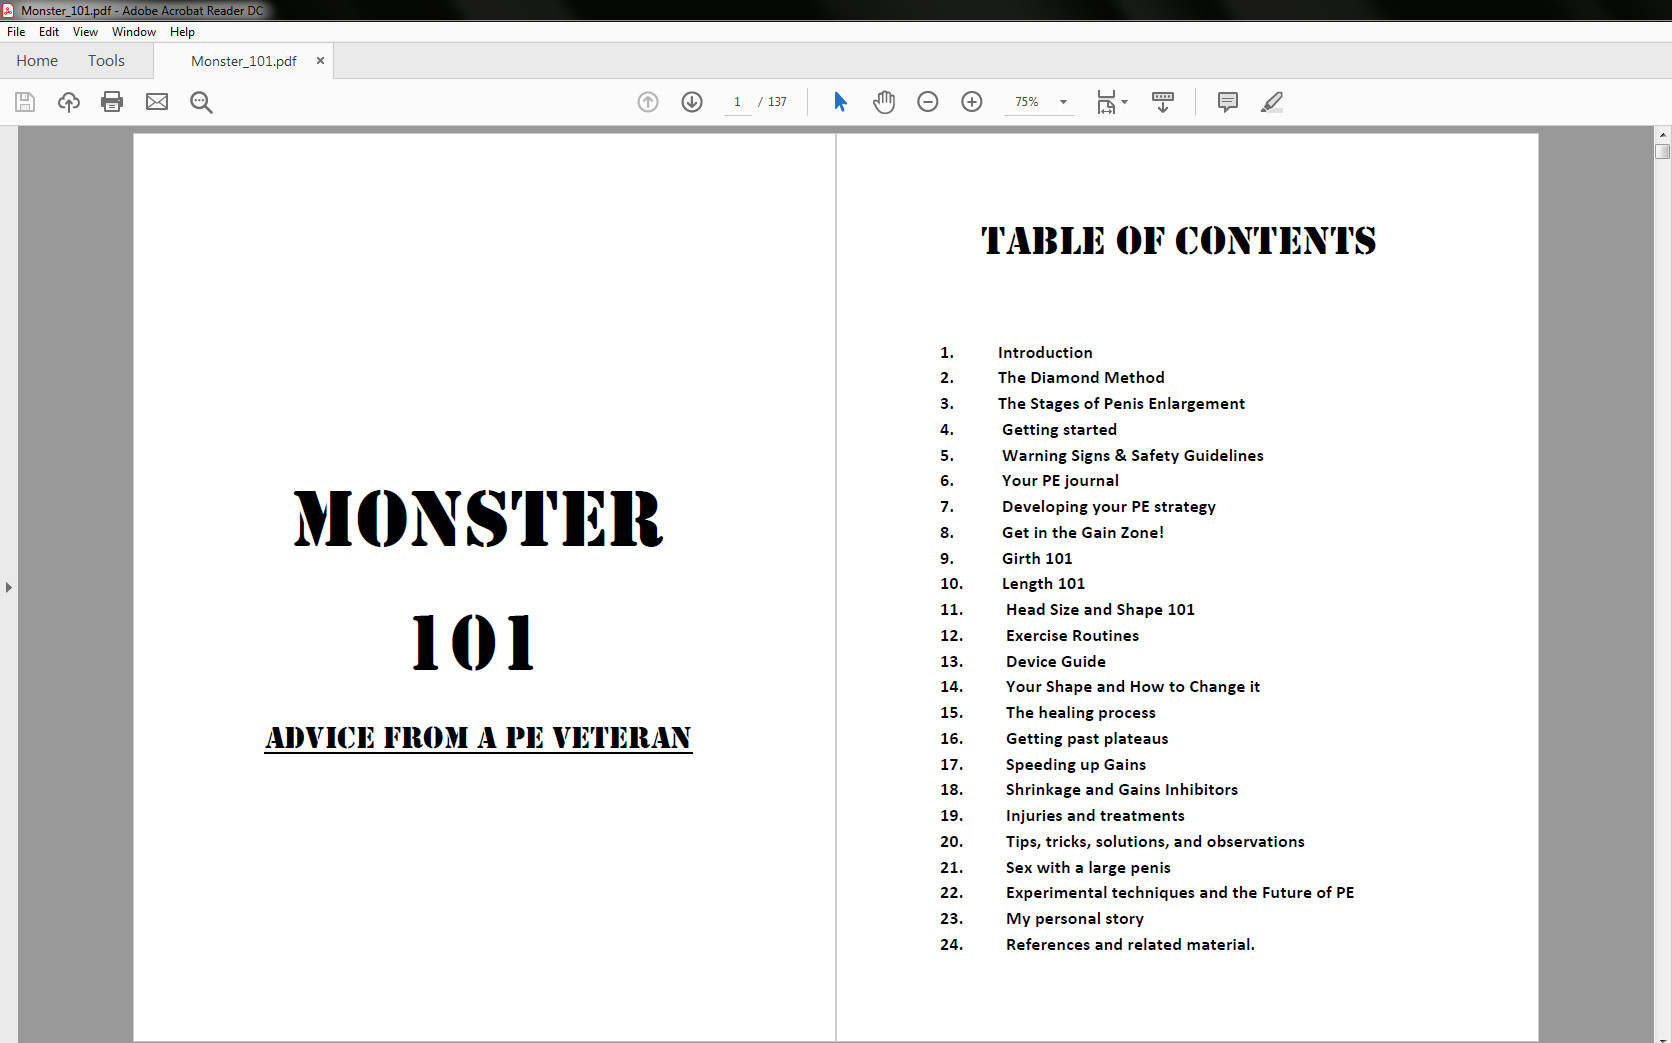 Legendary Enlargement's Monster 101 - Table of Contents